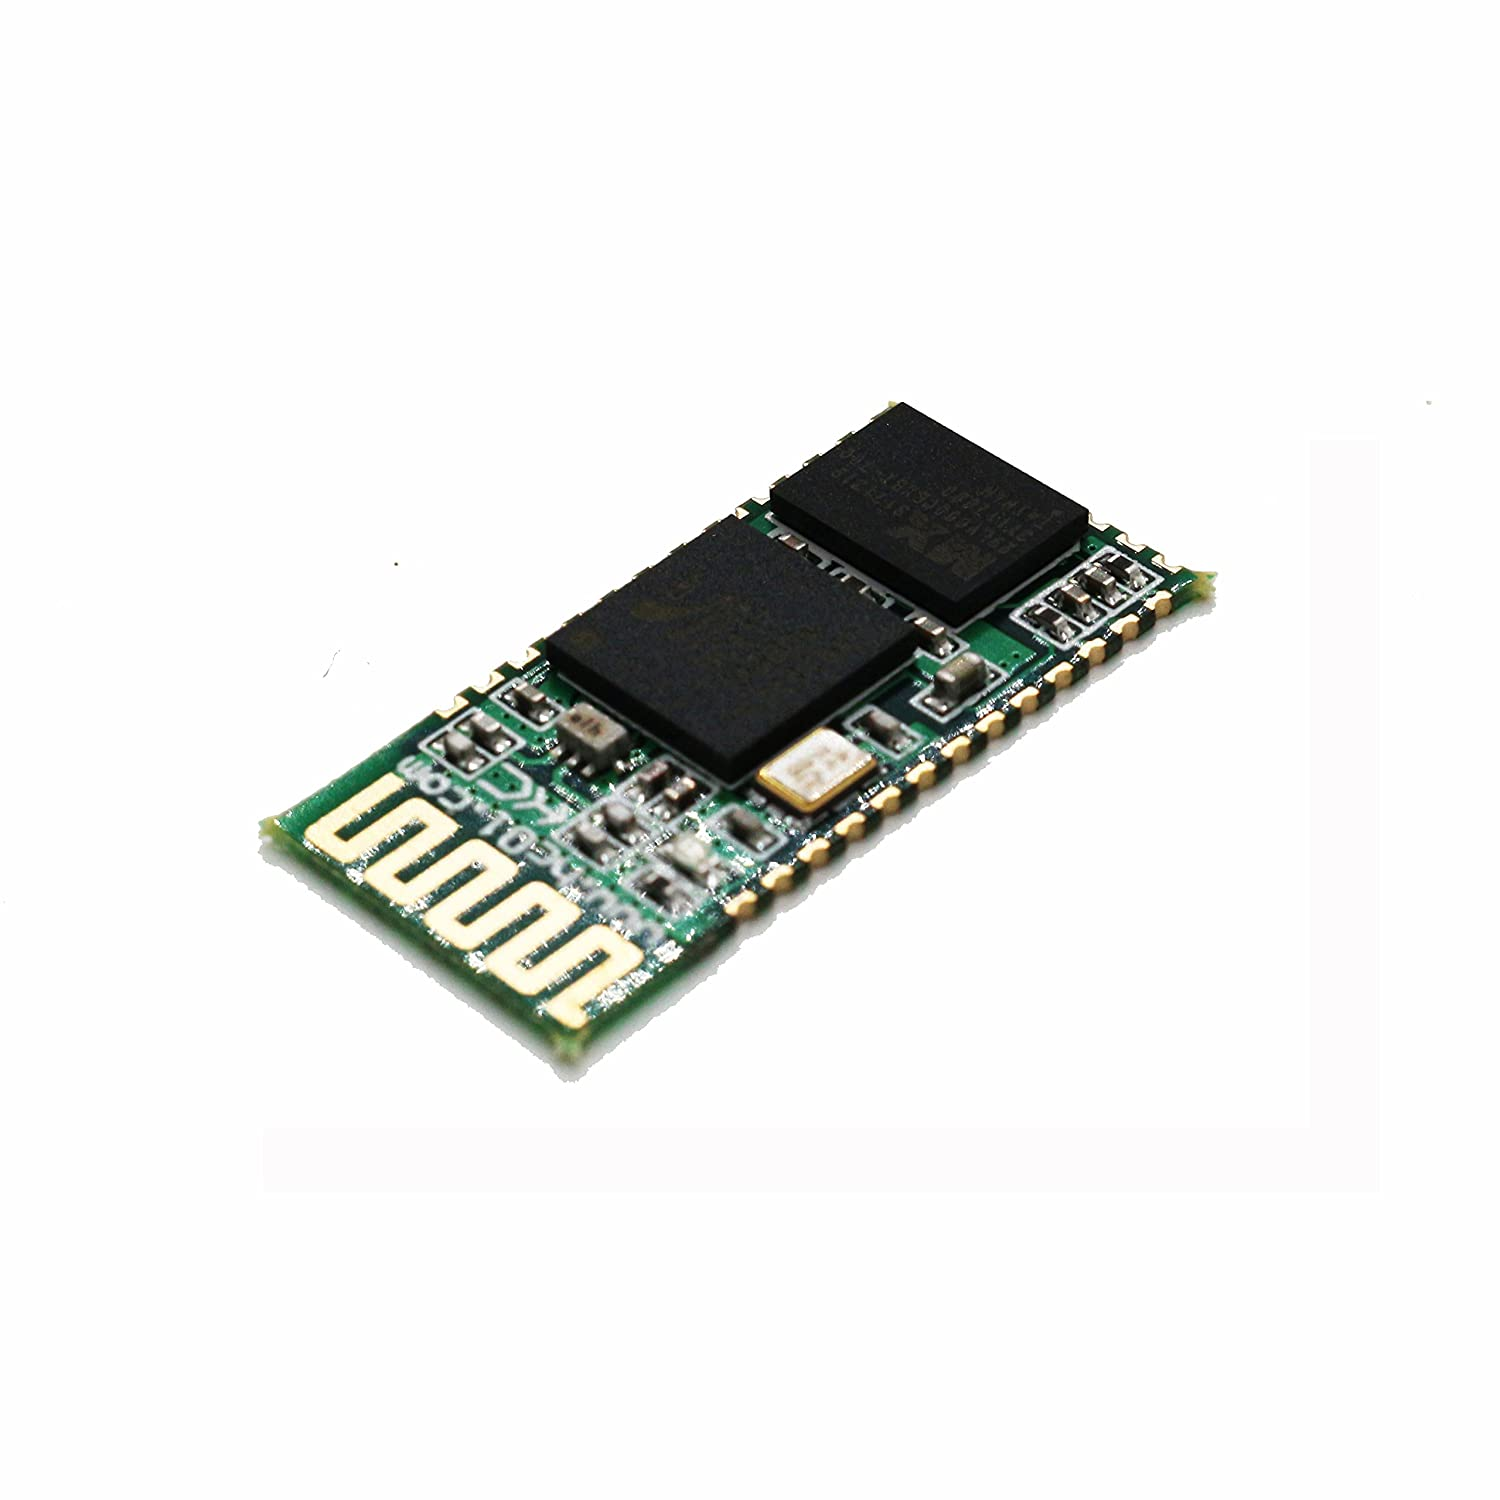 Sunhokey HC-06 serial port module connection 51 single-chip Bluetooth Module CSR wireless transmission module compatible with HC-07